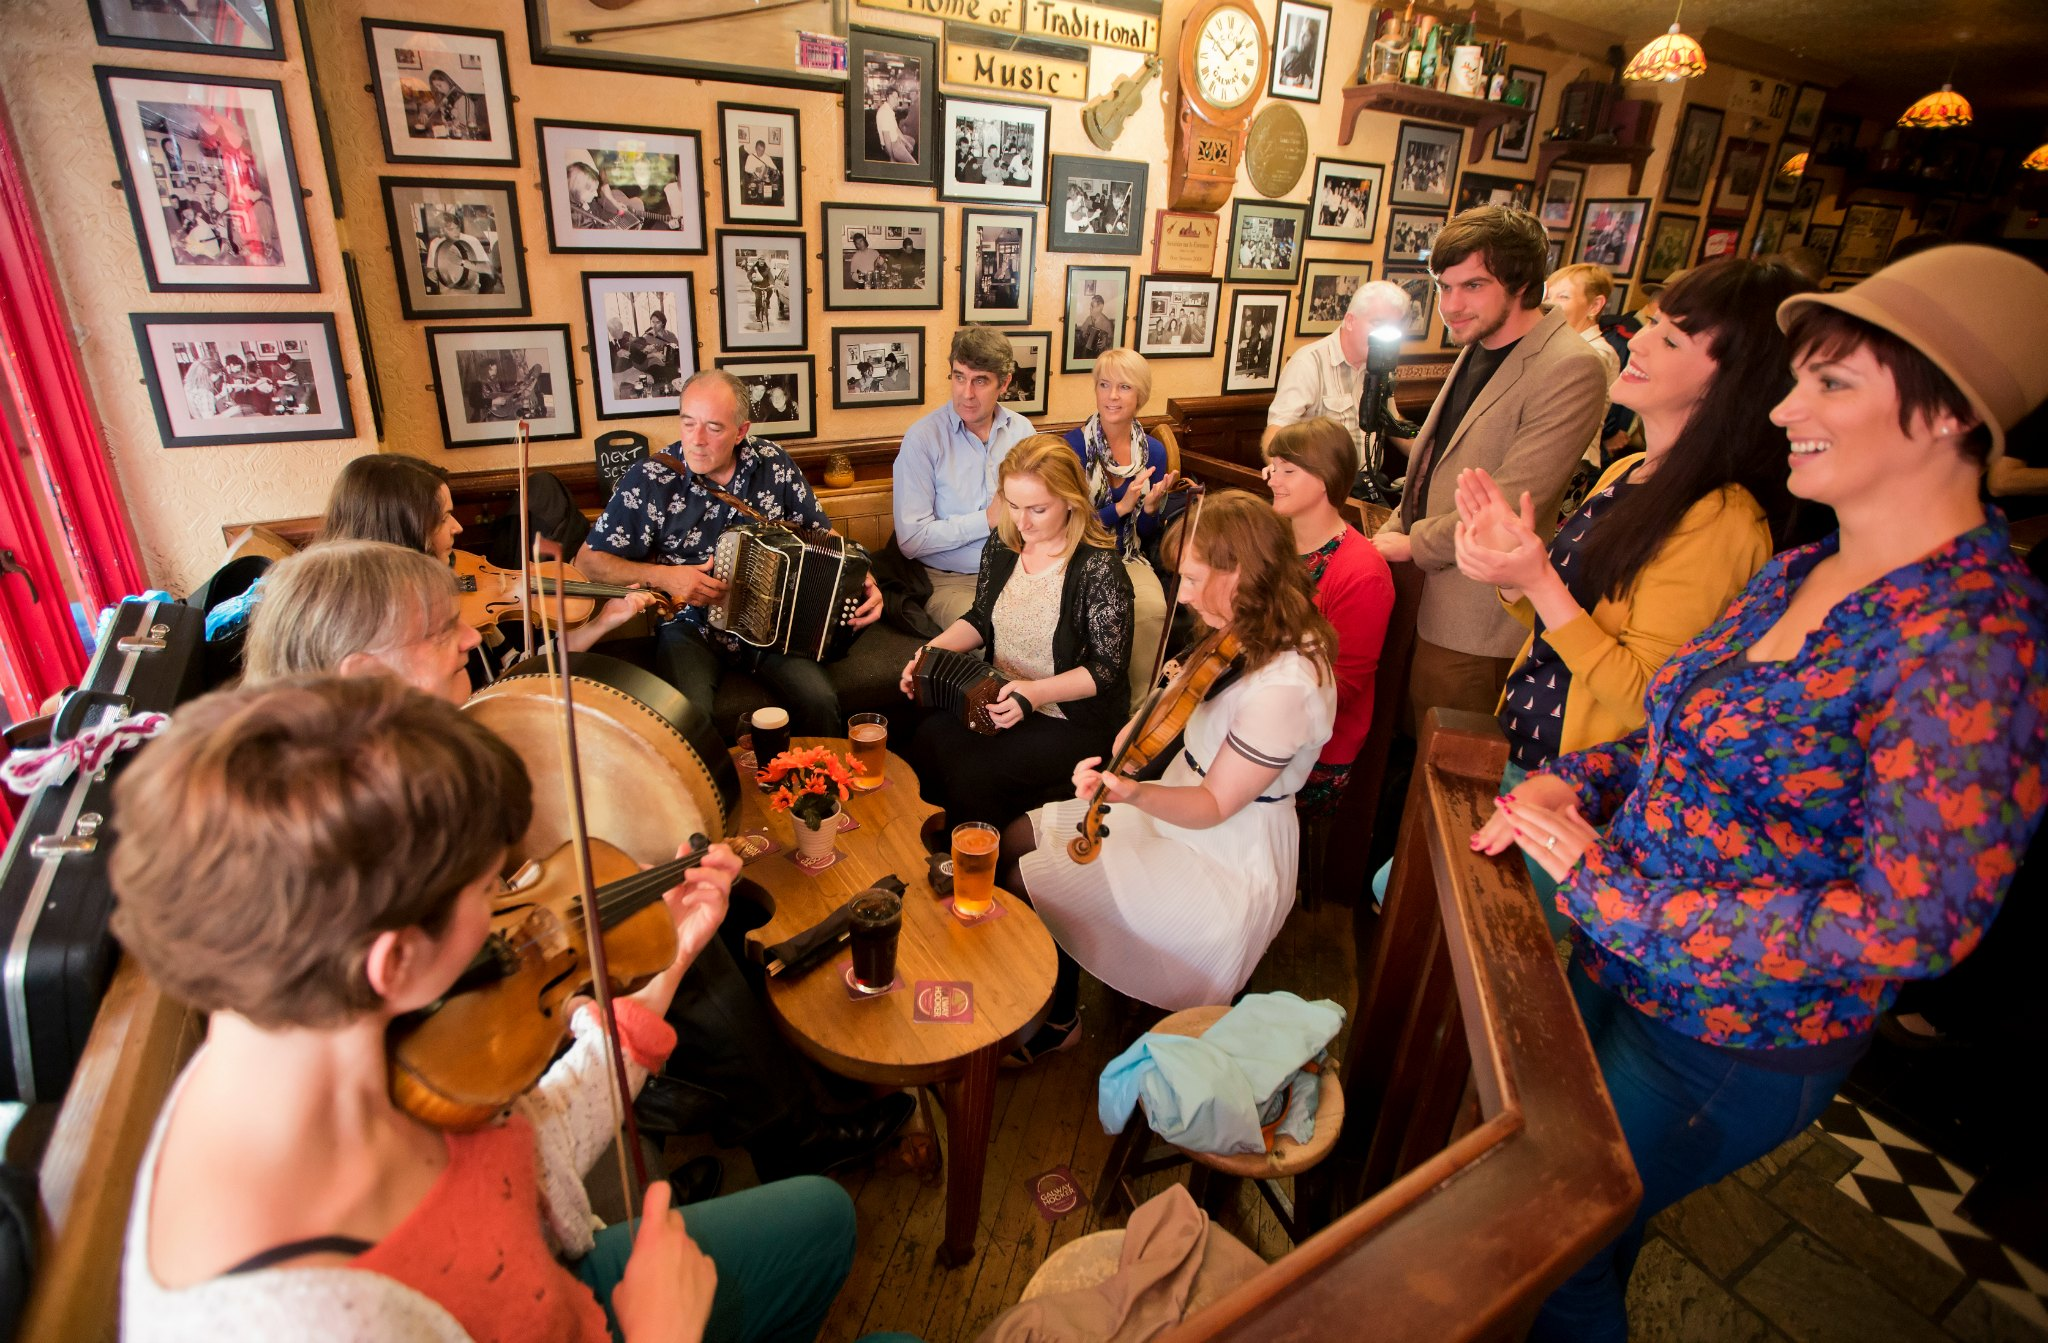 Traditional Irish Music Session in Galway Pubs Ireland